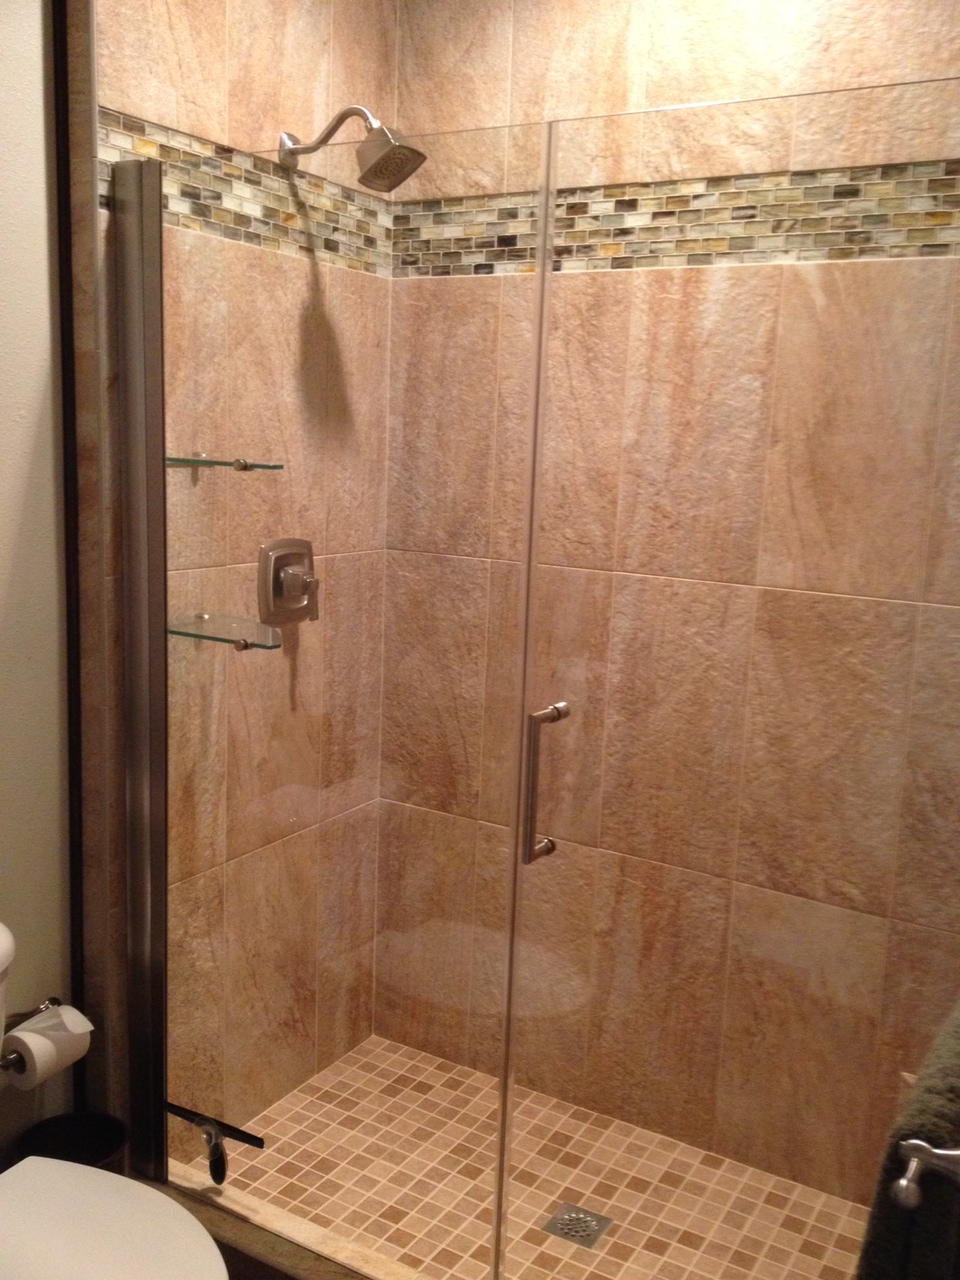 cork flooring in bathroom clean small shower - Cork Bathroom Interior